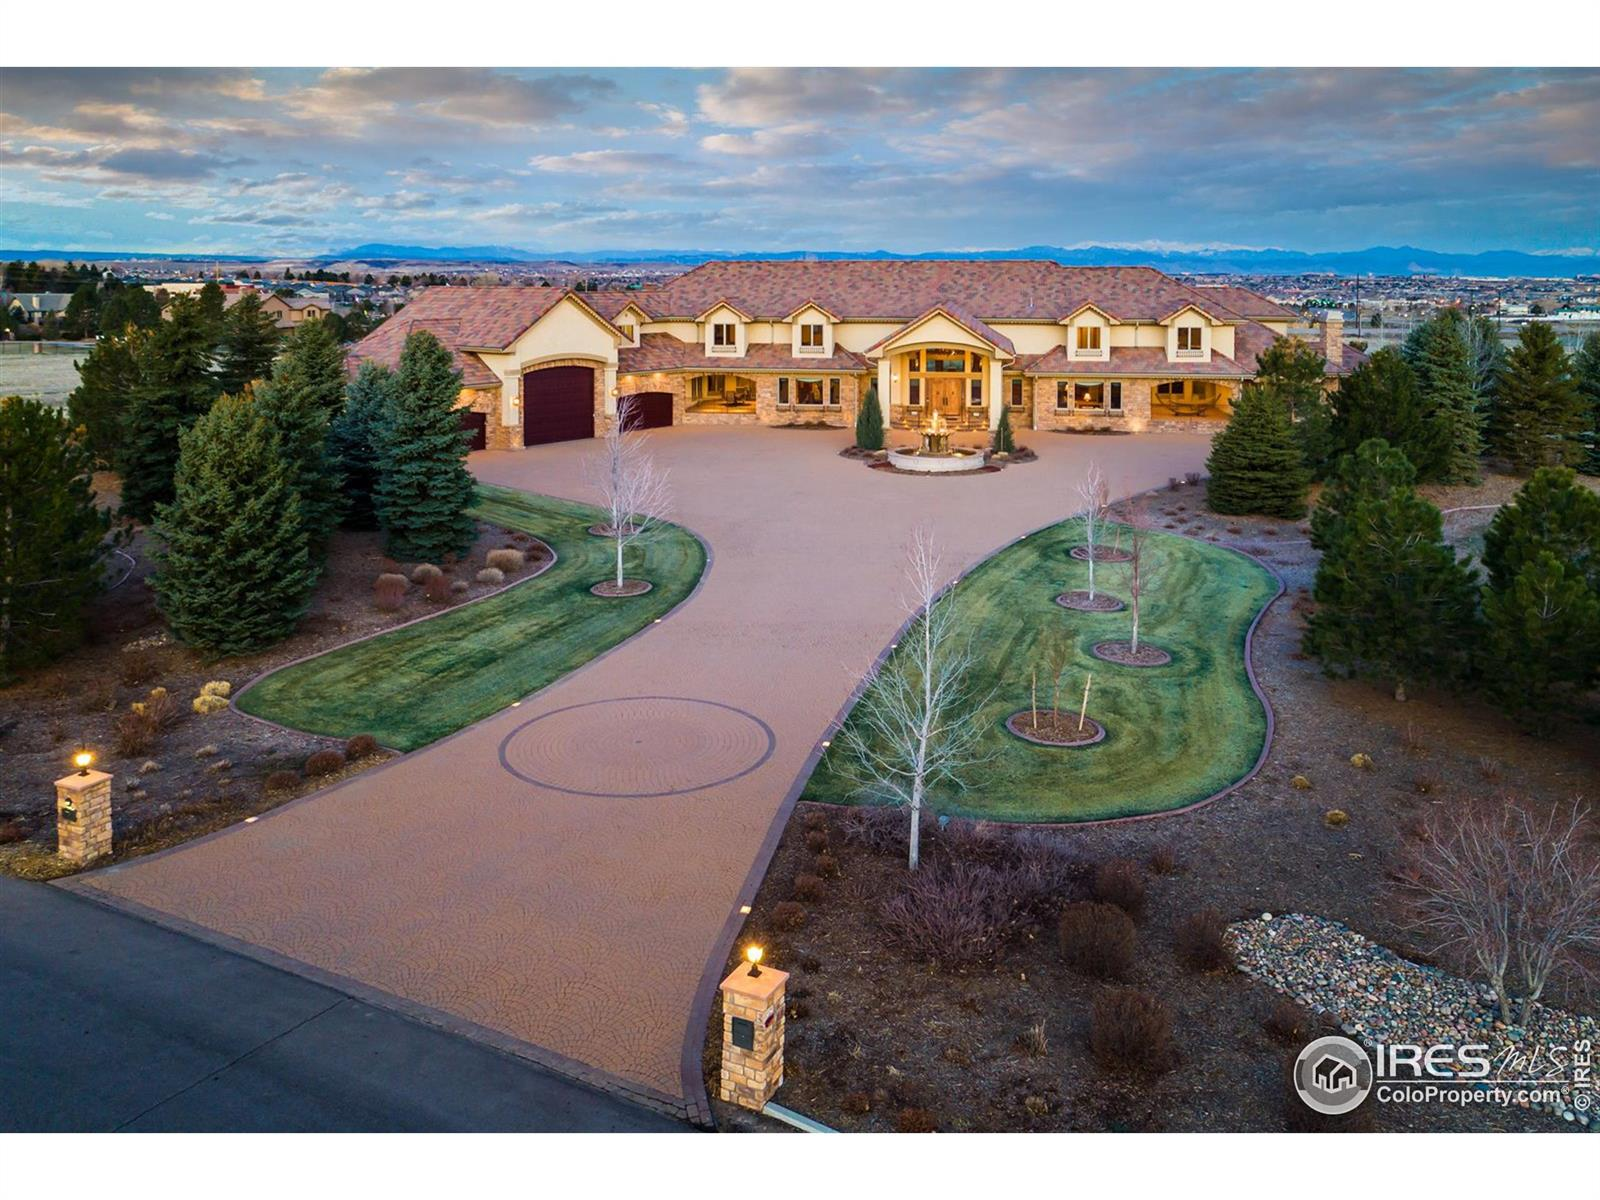 Welcome to this amazing estate located on 5 acres with 8 bedrooms & 12 bathrooms. This custom-built home sprawls across 23,454 square feet with natural light, huge windows & views! A European paver driveway welcomes you into the home with double stairways, intricate attention to detail all through the home & an elevator to take you to each level. From the Geothermal heating & cooling system to the electrostatically painted metalwork, no expense has been spared. The 8 ensuite bedrooms feature two master suites.  Your guests will be impressed with the entertainment options within this home, from the indoor basketball court to the 18-seat movie theater, the game room, the huge basement living space, the 6/9-hole disc golf course, the gym, the Far-infrared cedar-lined sauna, the outdoor hot tub & the multiple outdoor living spaces that highlight Colorado living at its best.  The Grand Centennial Estate is available & ready for you to take the keys & live the life of your dreams.